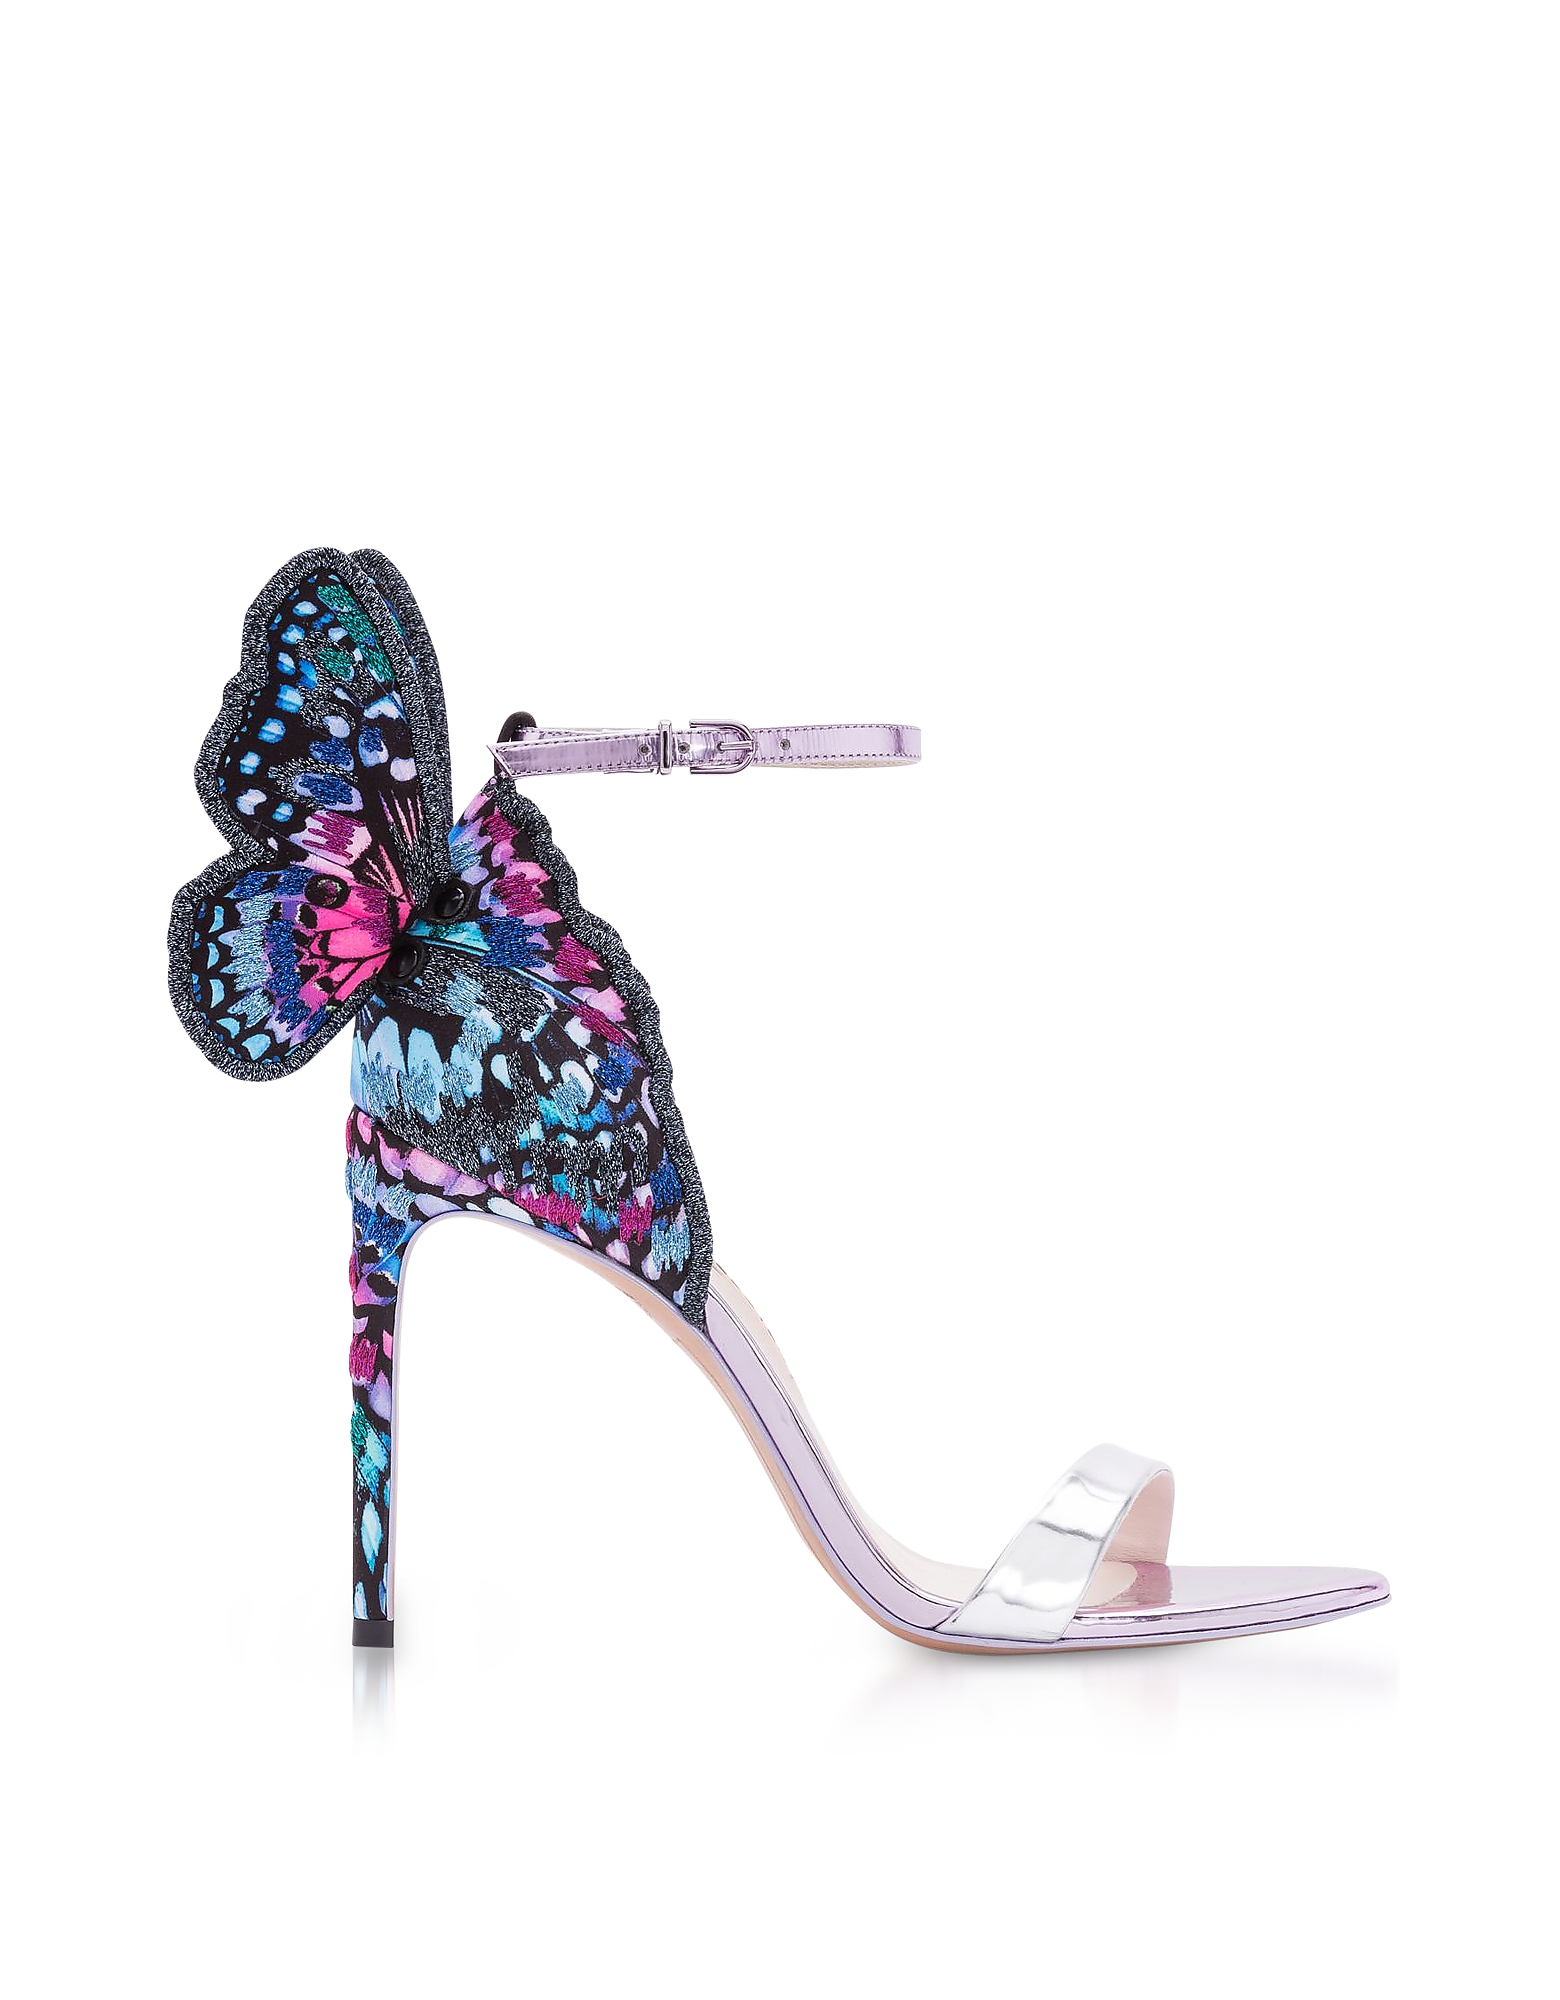 Sophia Webster Shoes, Silver and Blue Chiara Embroidery Sandals